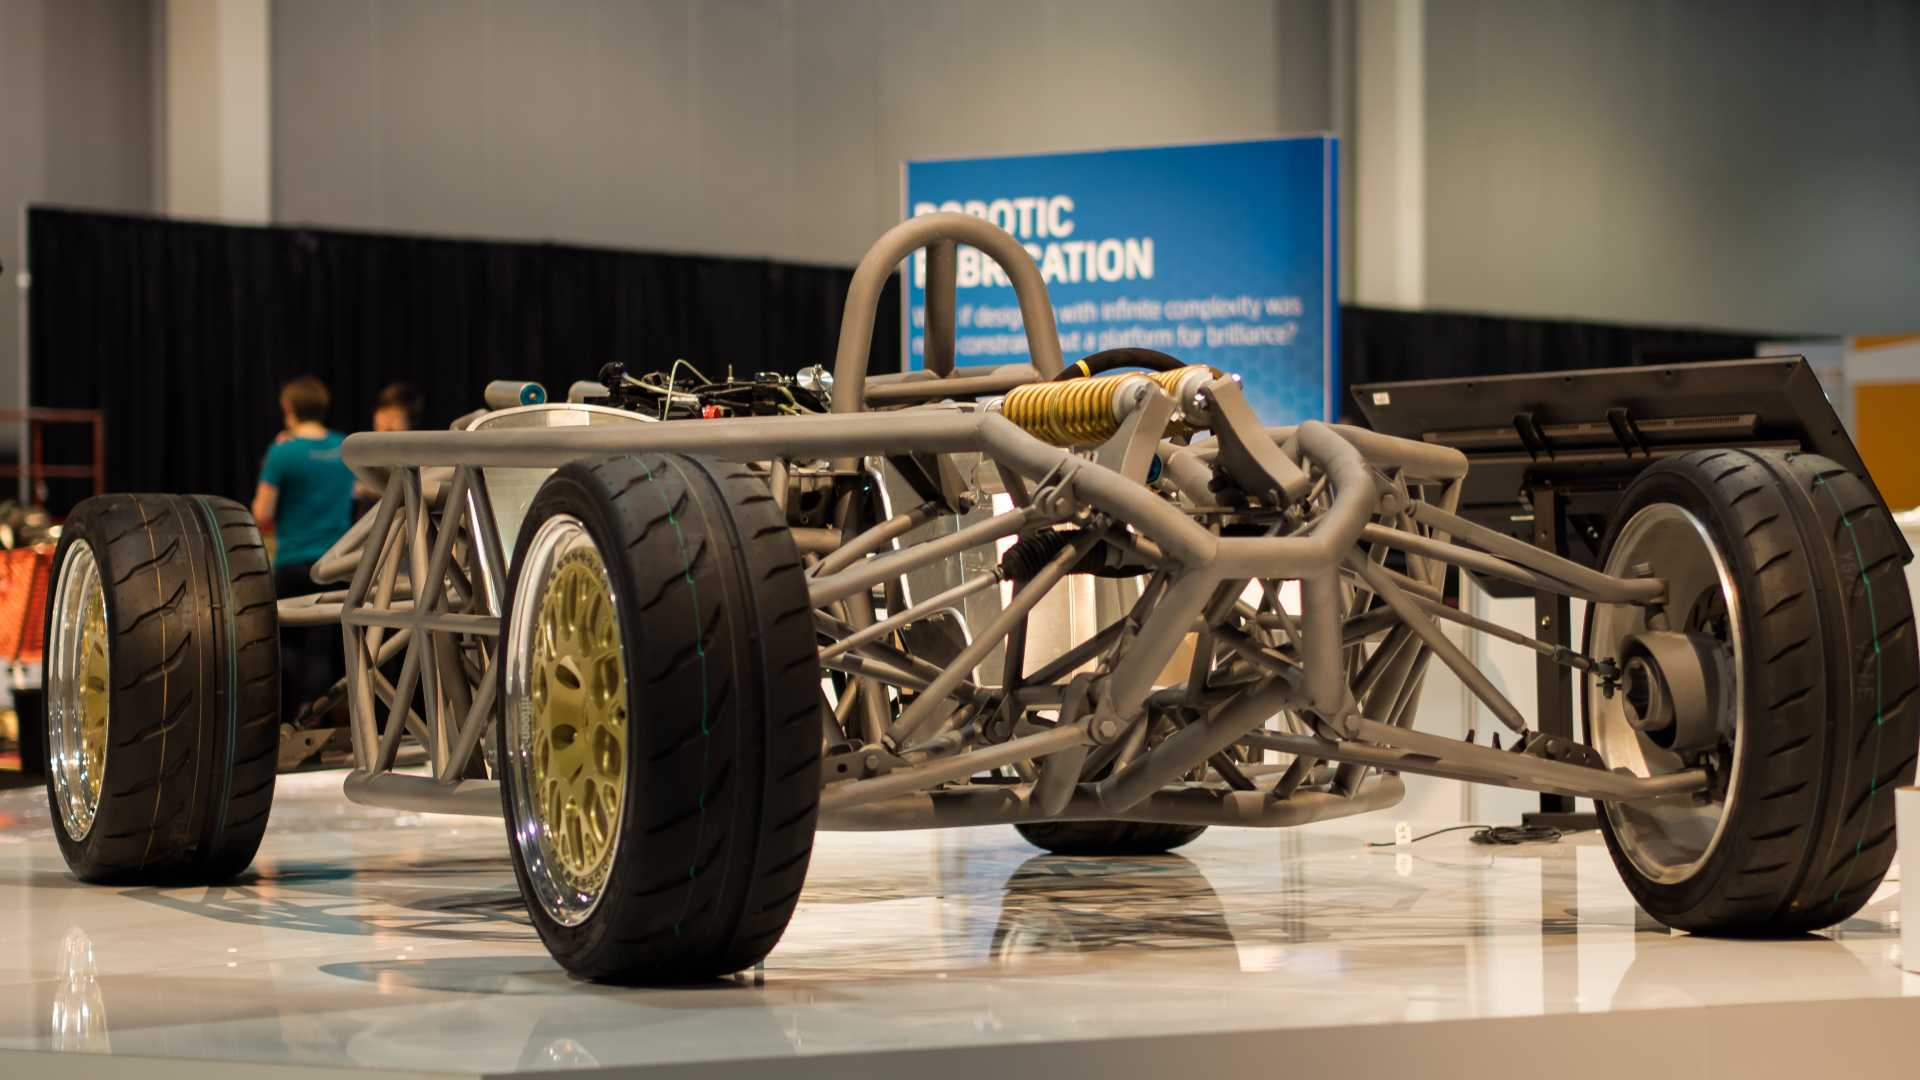 Innovative vehicle chassis – the 'Hackrod' – created using Autodesk's Dreamcatcher generative design software.